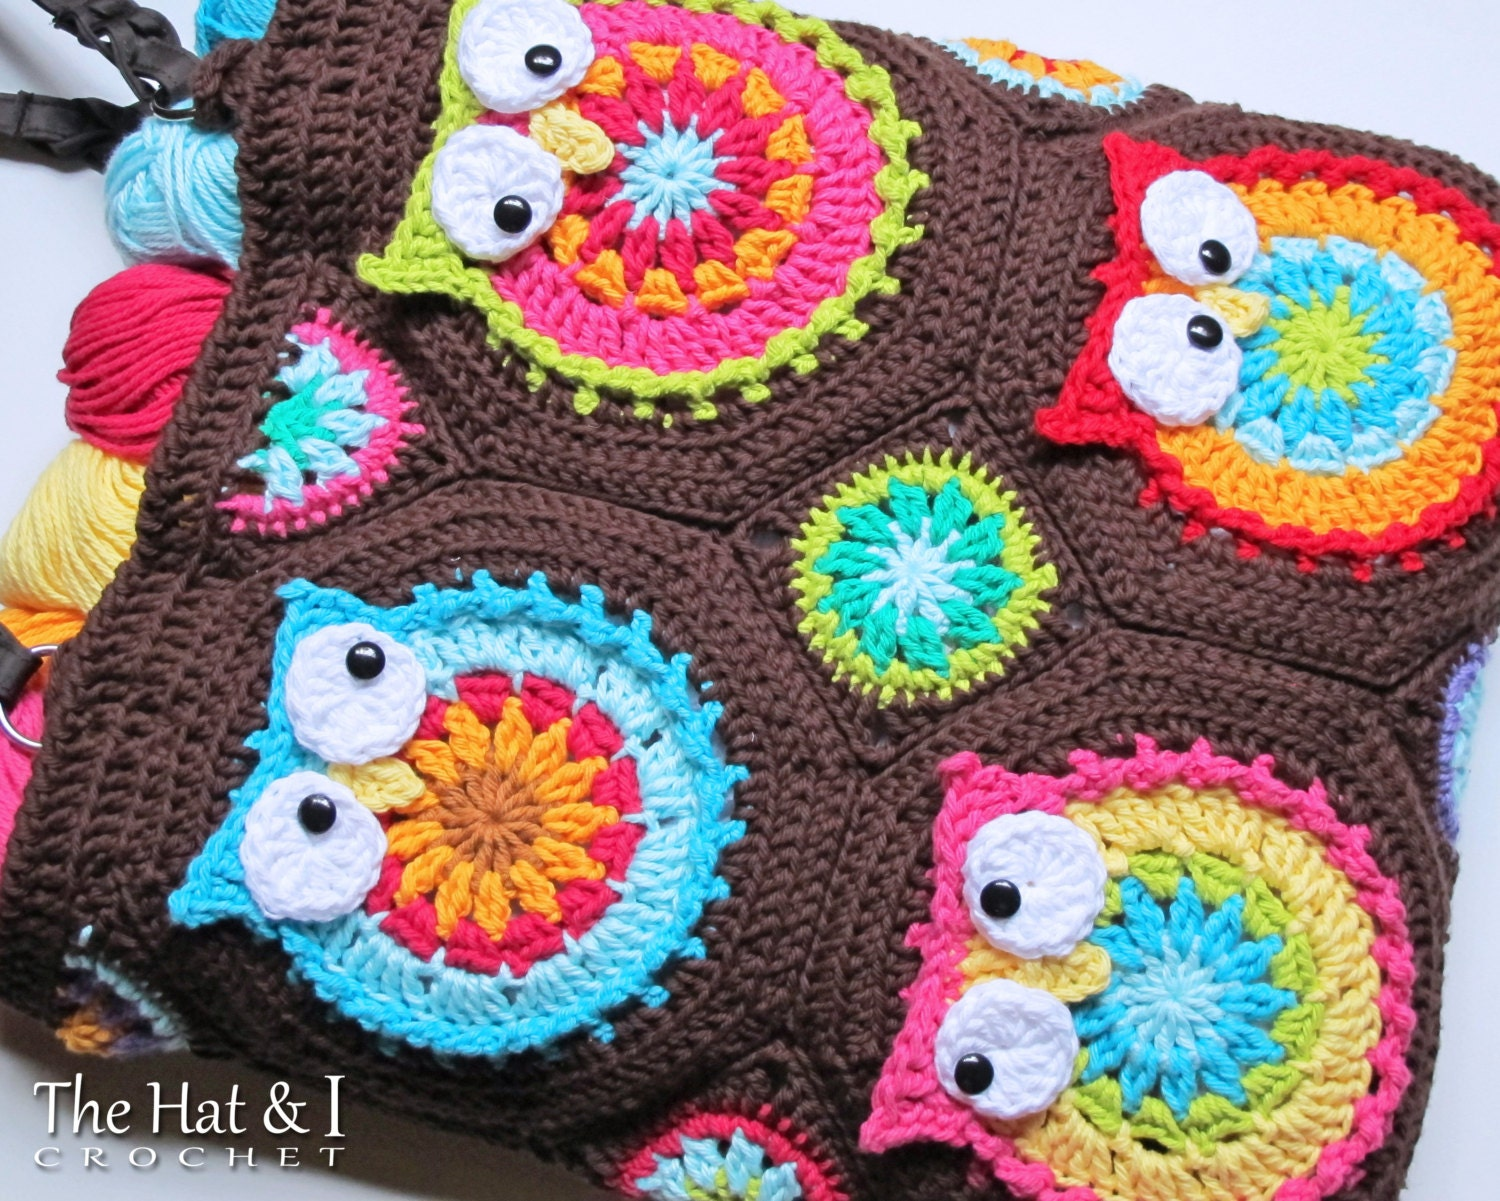 Crochet pattern owl toteem a colorful crochet owl tote crochet pattern owl toteem a colorful crochet owl tote pattern colorful owl bag pattern purse pattern w owls instant pdf download bankloansurffo Choice Image